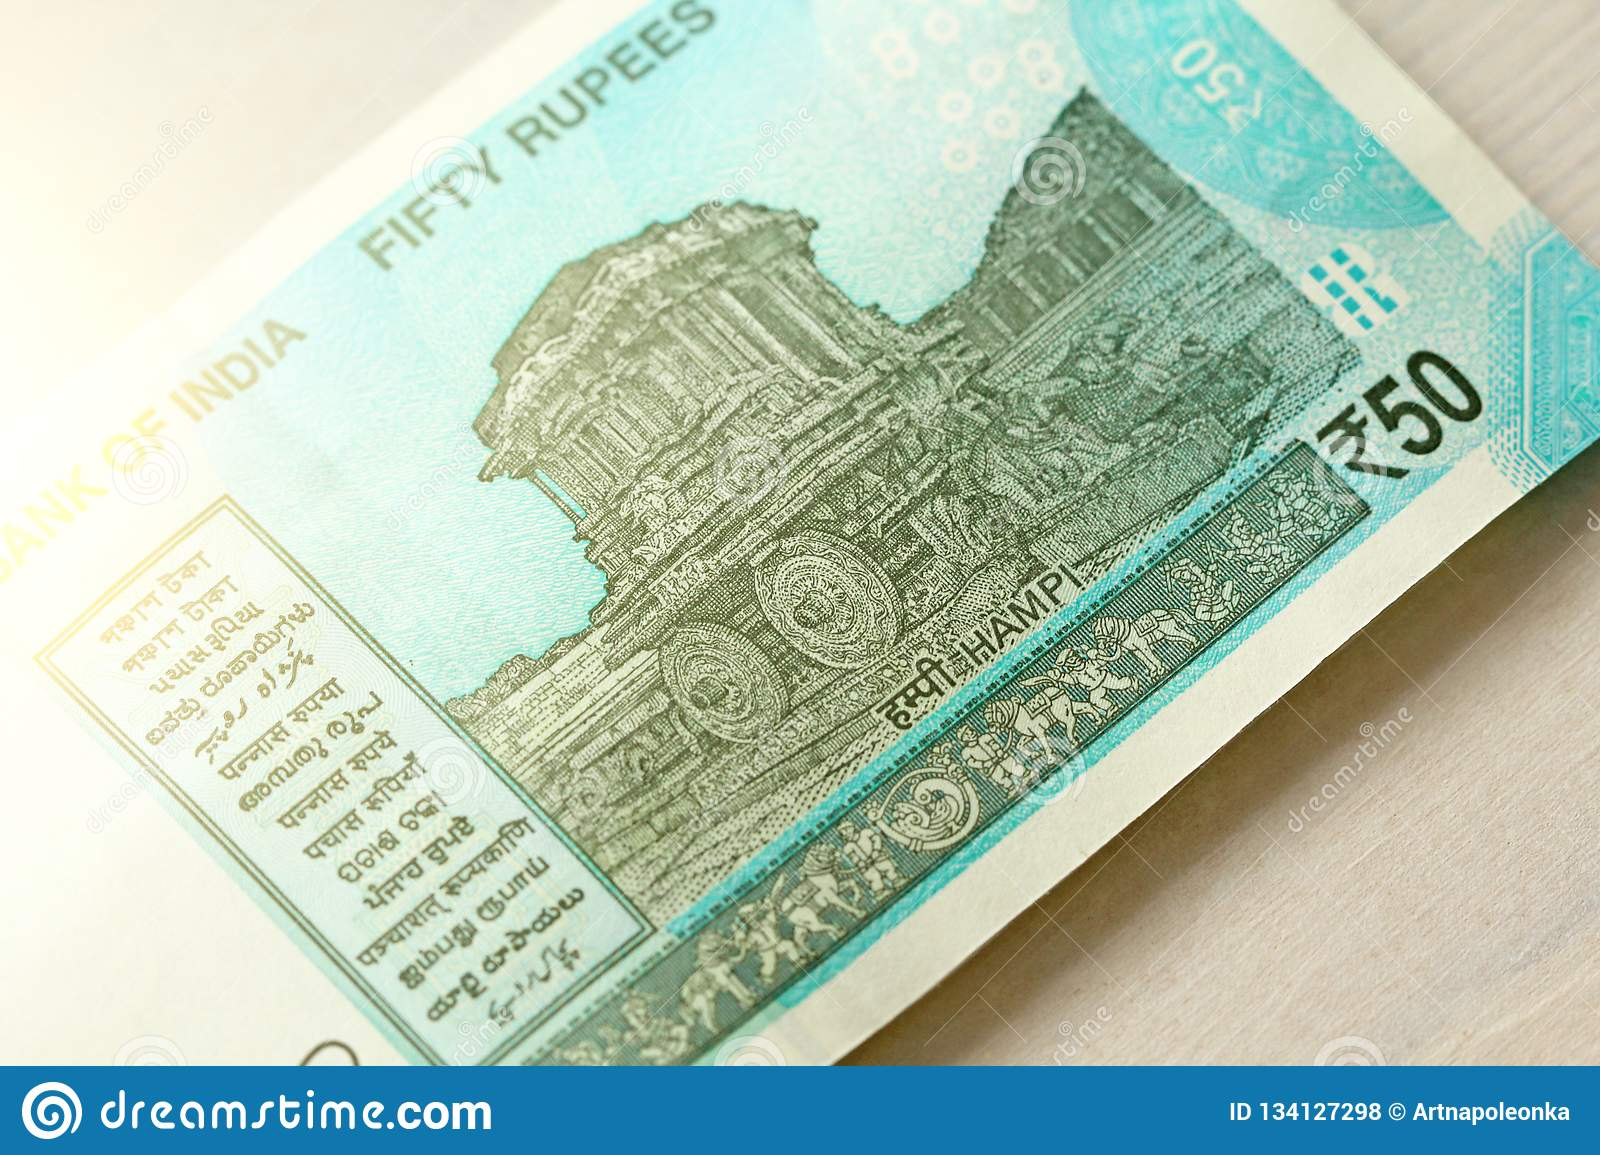 A new banknote of India with a denomination of 50 rupees. Indian currency. The other side, Hampi`s chariot